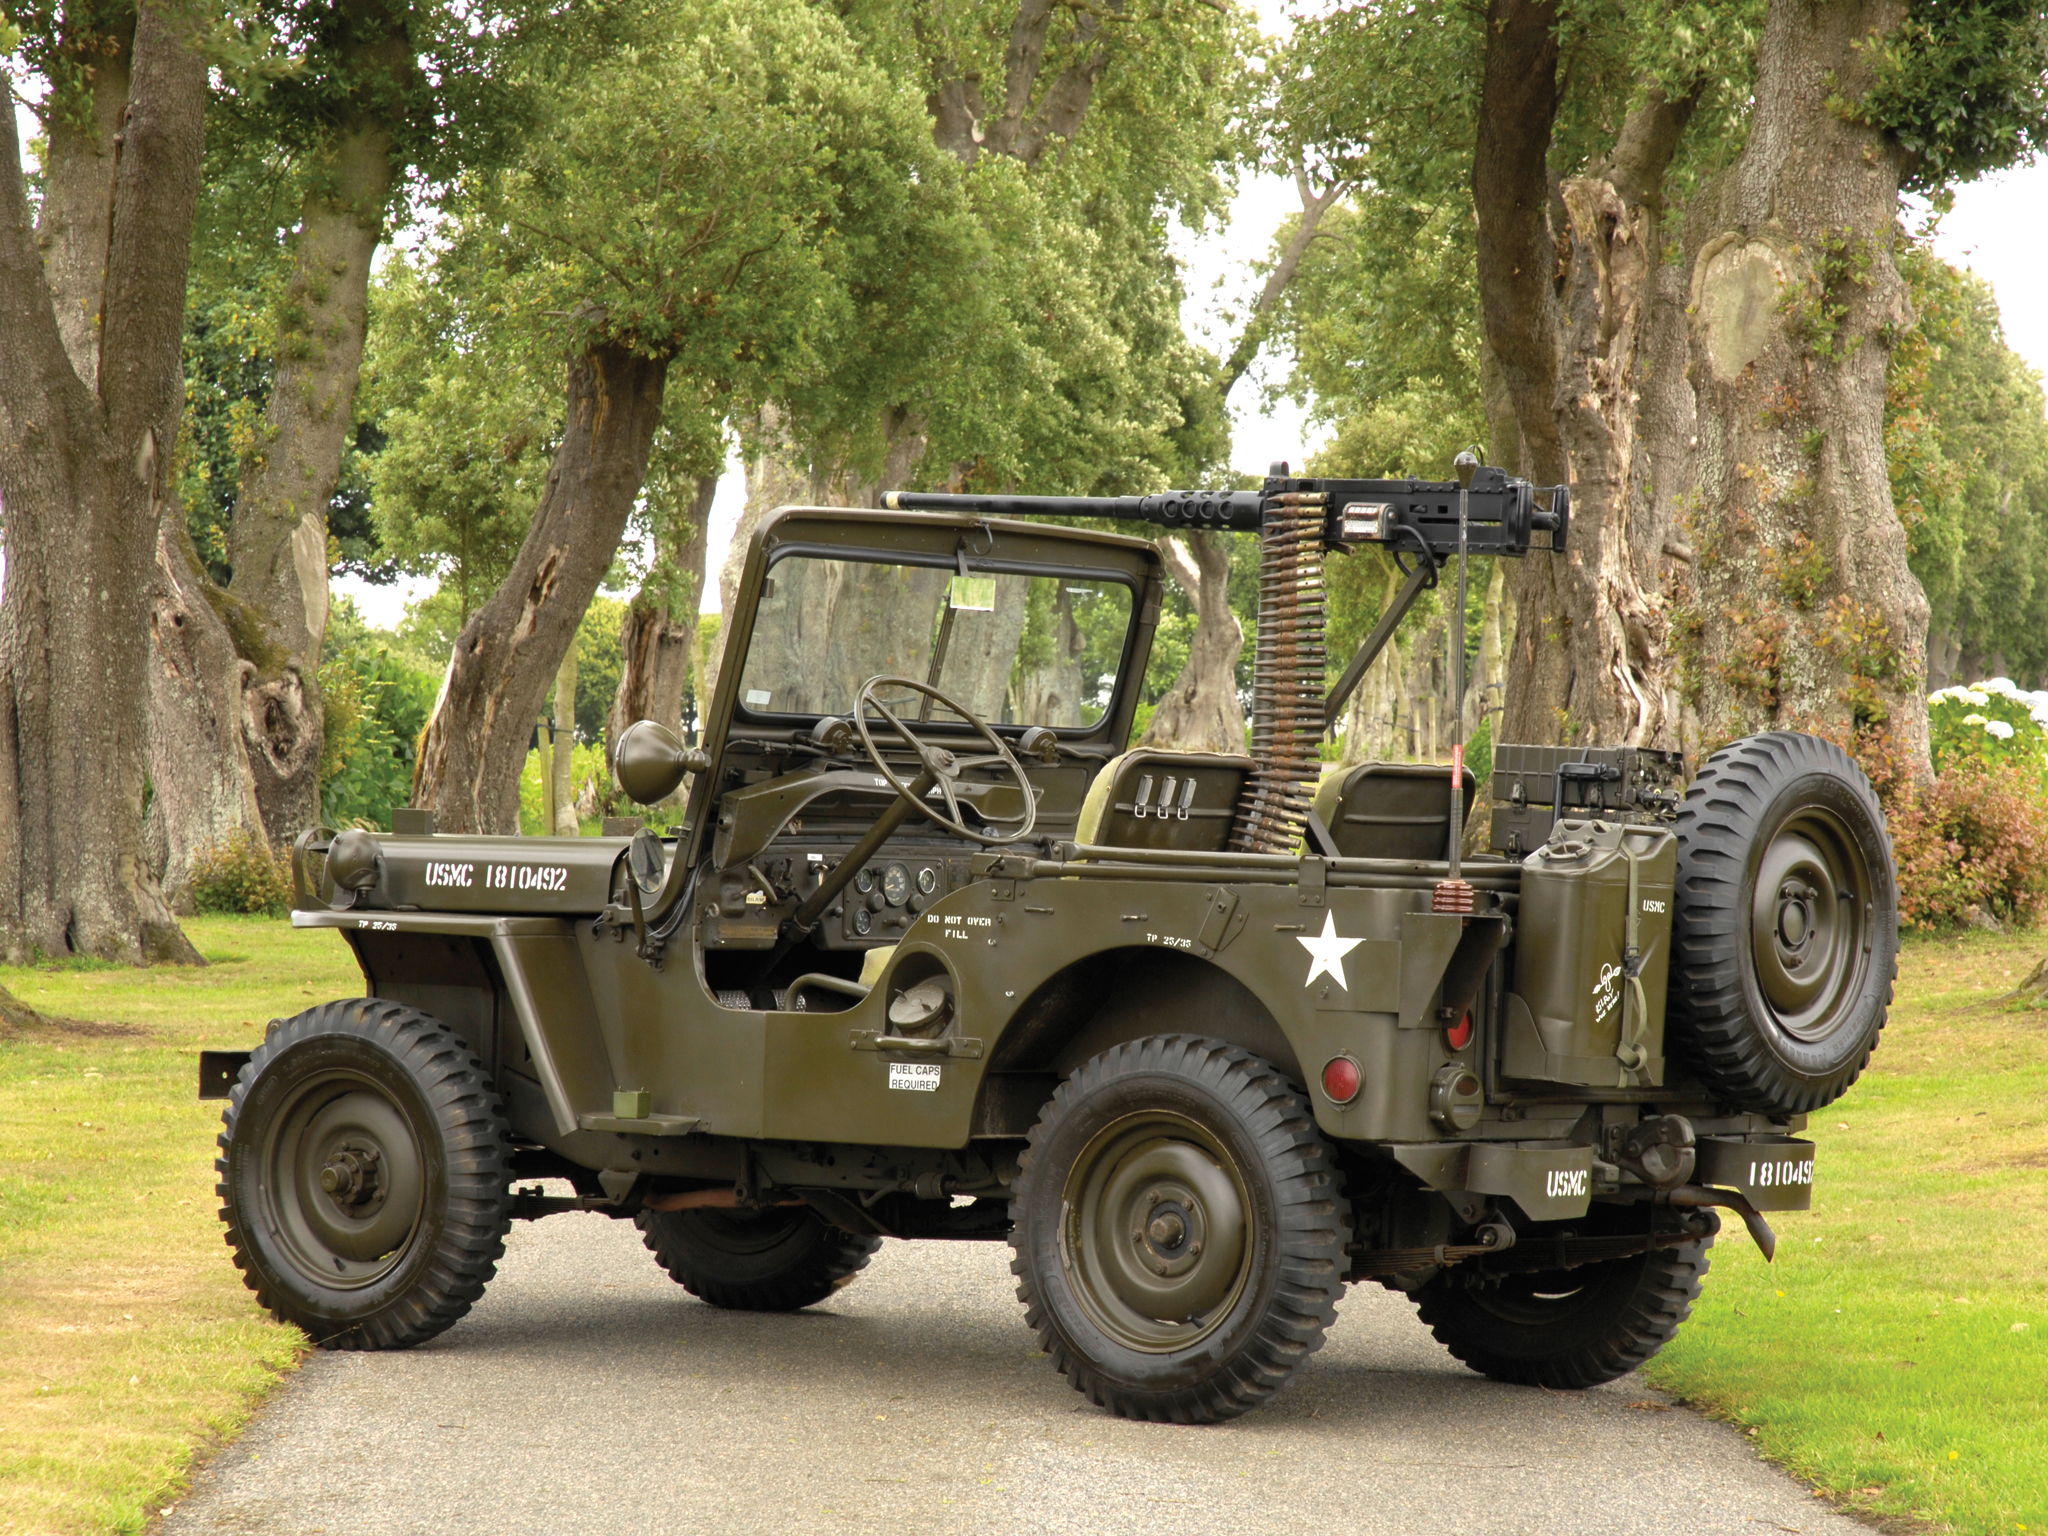 Hotchkiss M201 Jeep For Sale >> Willys Jeeps Vintage Military Trucks   Autos Post